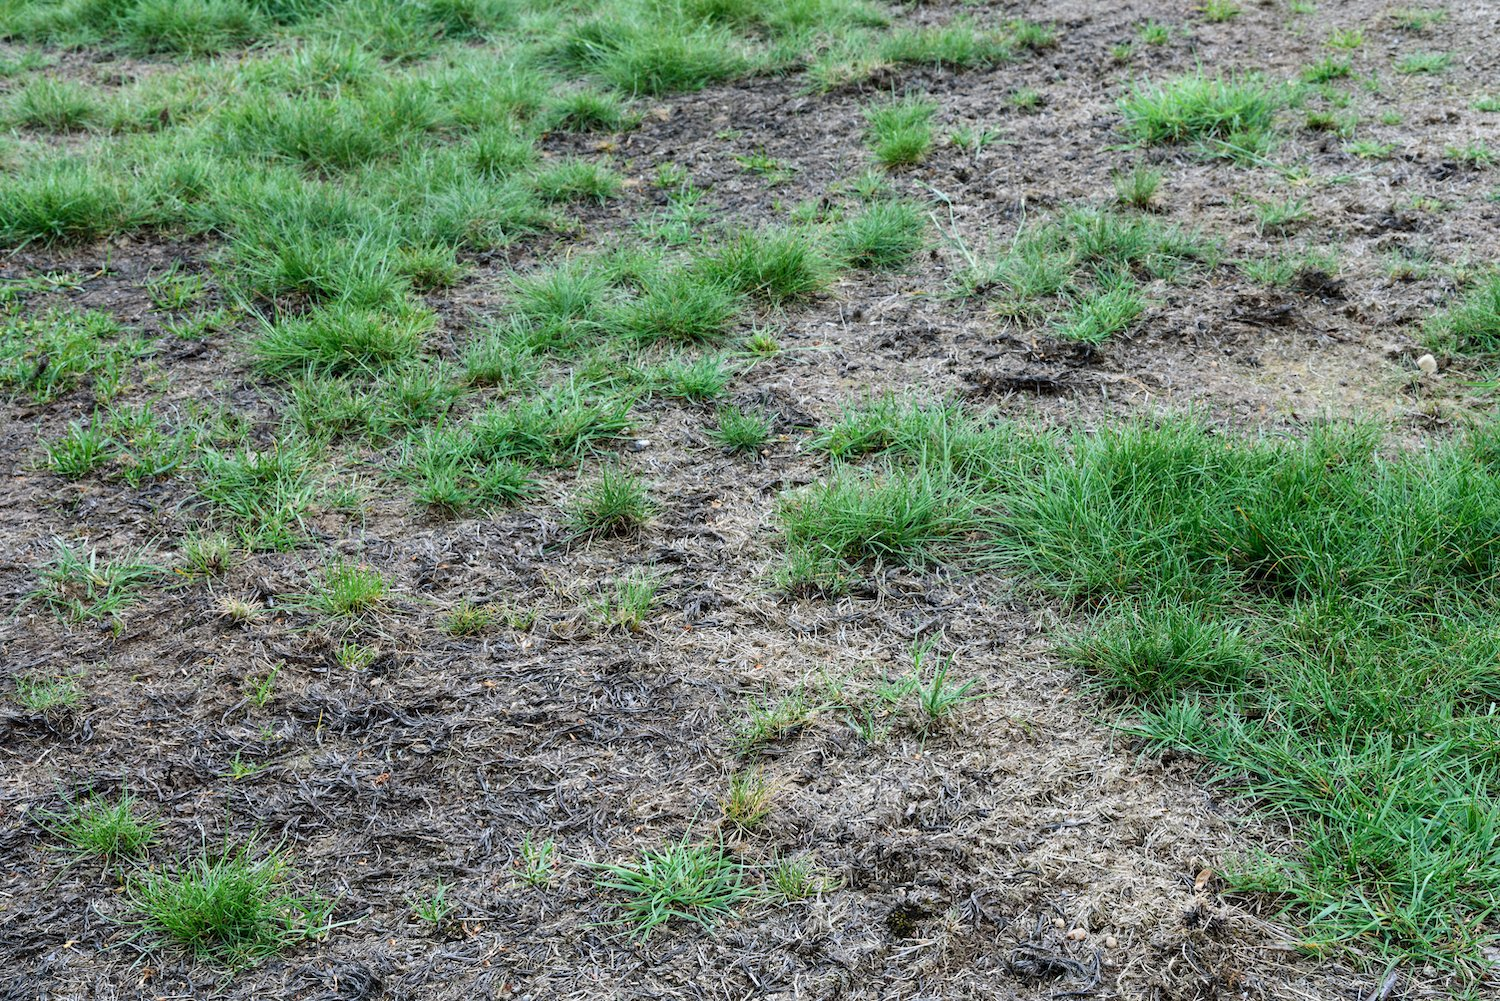 turf-disease-grass-dead-1